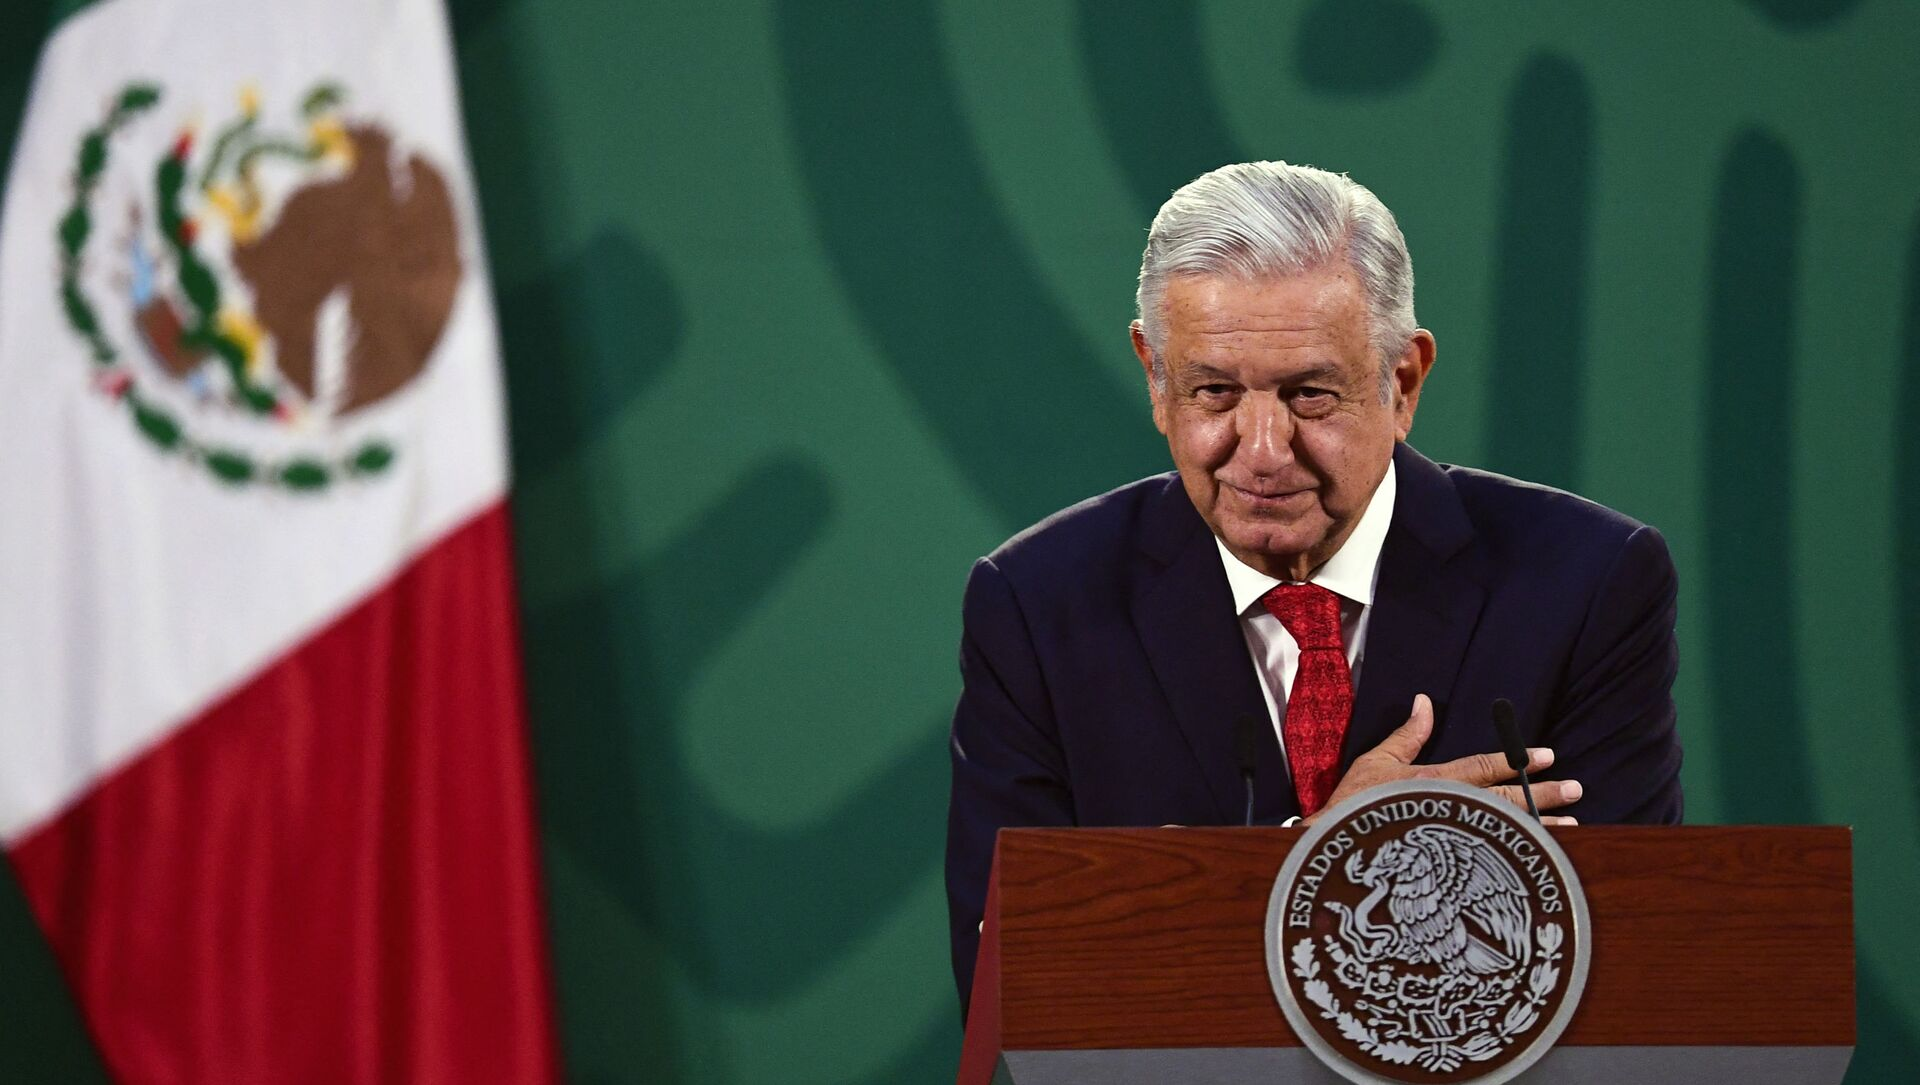 Mexican President Andres Manuel Lopez Obrador delivers a speech during the virtual Earth Day Summit, at the National Palace in Mexico City, on April 22, 2021 - Sputnik International, 1920, 31.07.2021